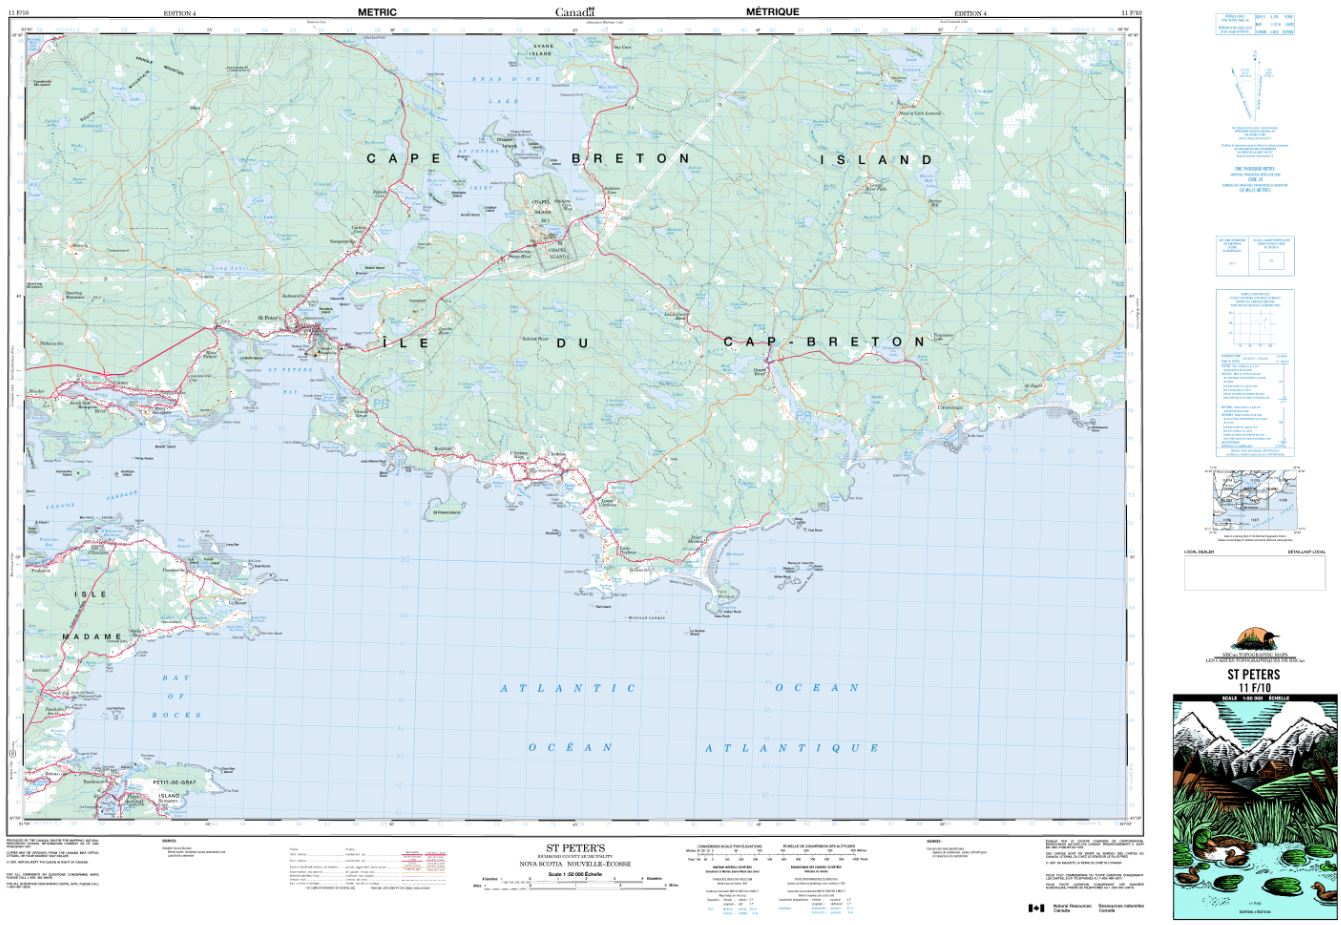 11F/10 St Peter's Topographic Map Nova Scotia